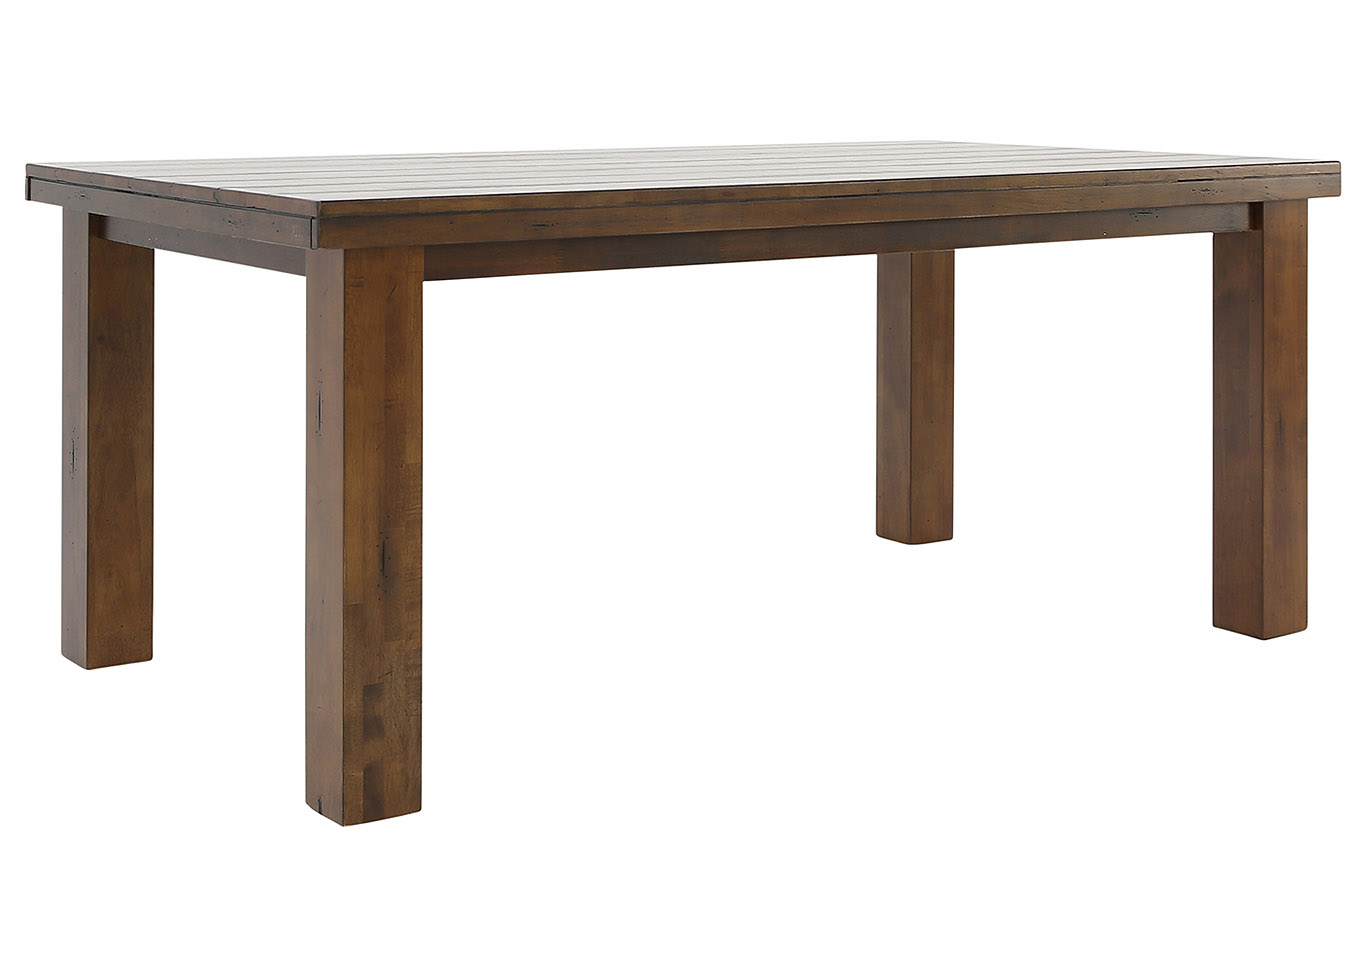 TAOS DINING TABLE,UNITED FURNITURE